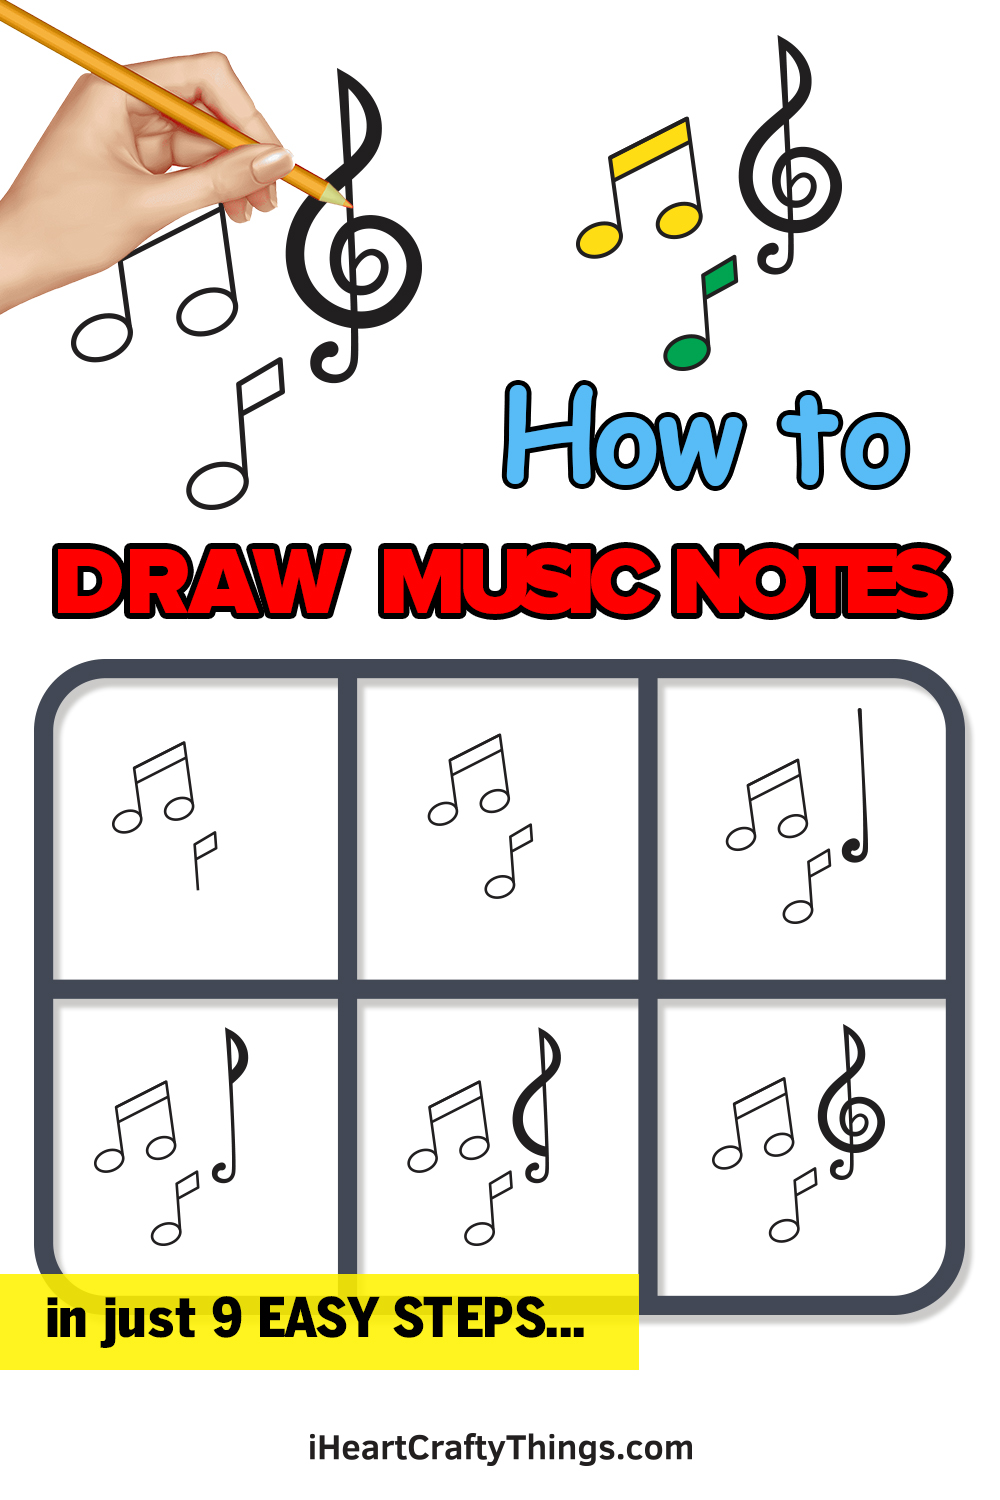 how to draw music notes in 9 easy steps